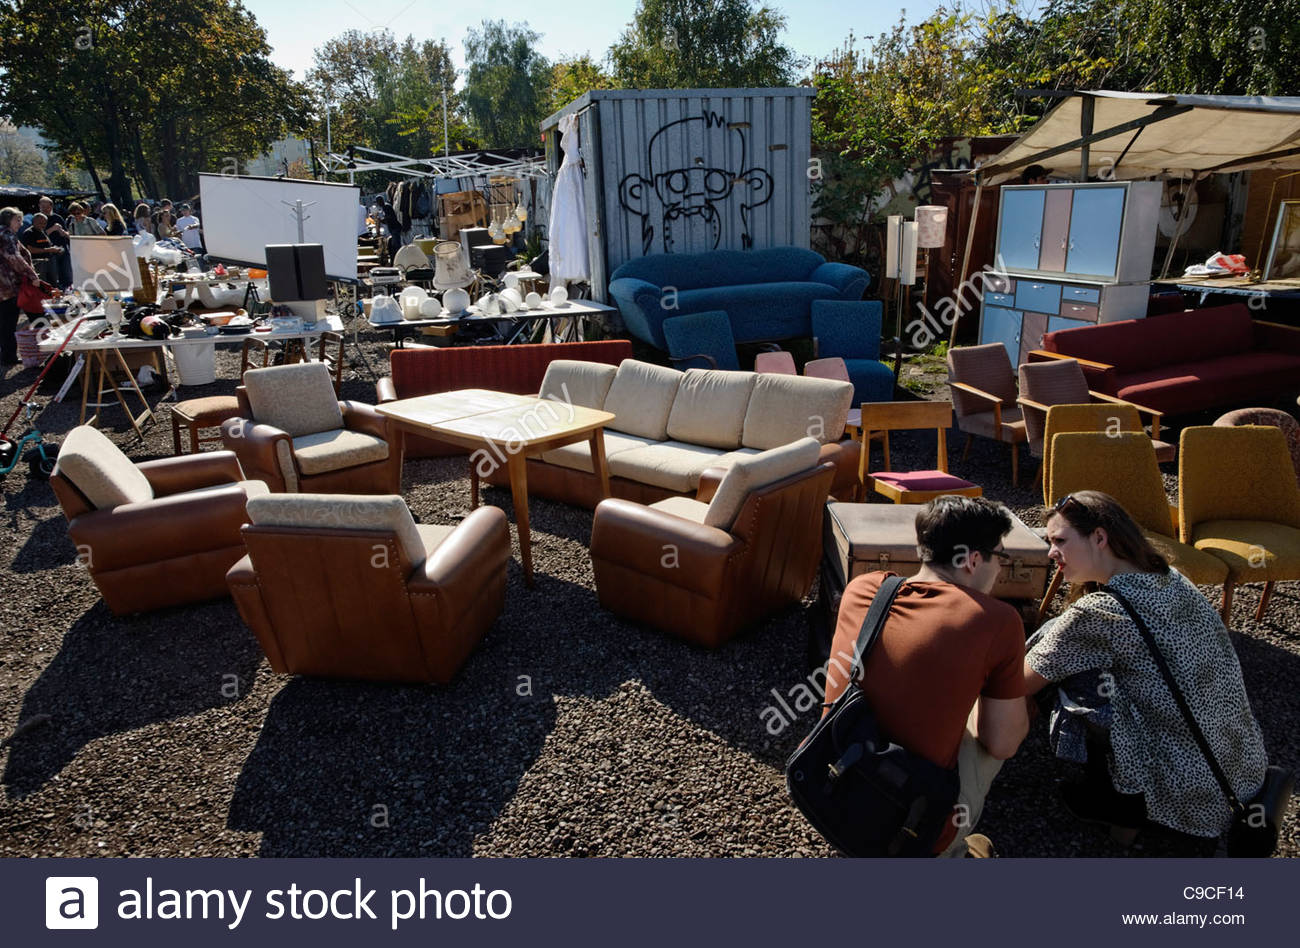 young couple inspecting old furniture at the Mauerpark flea market in Berlin - Stock Image